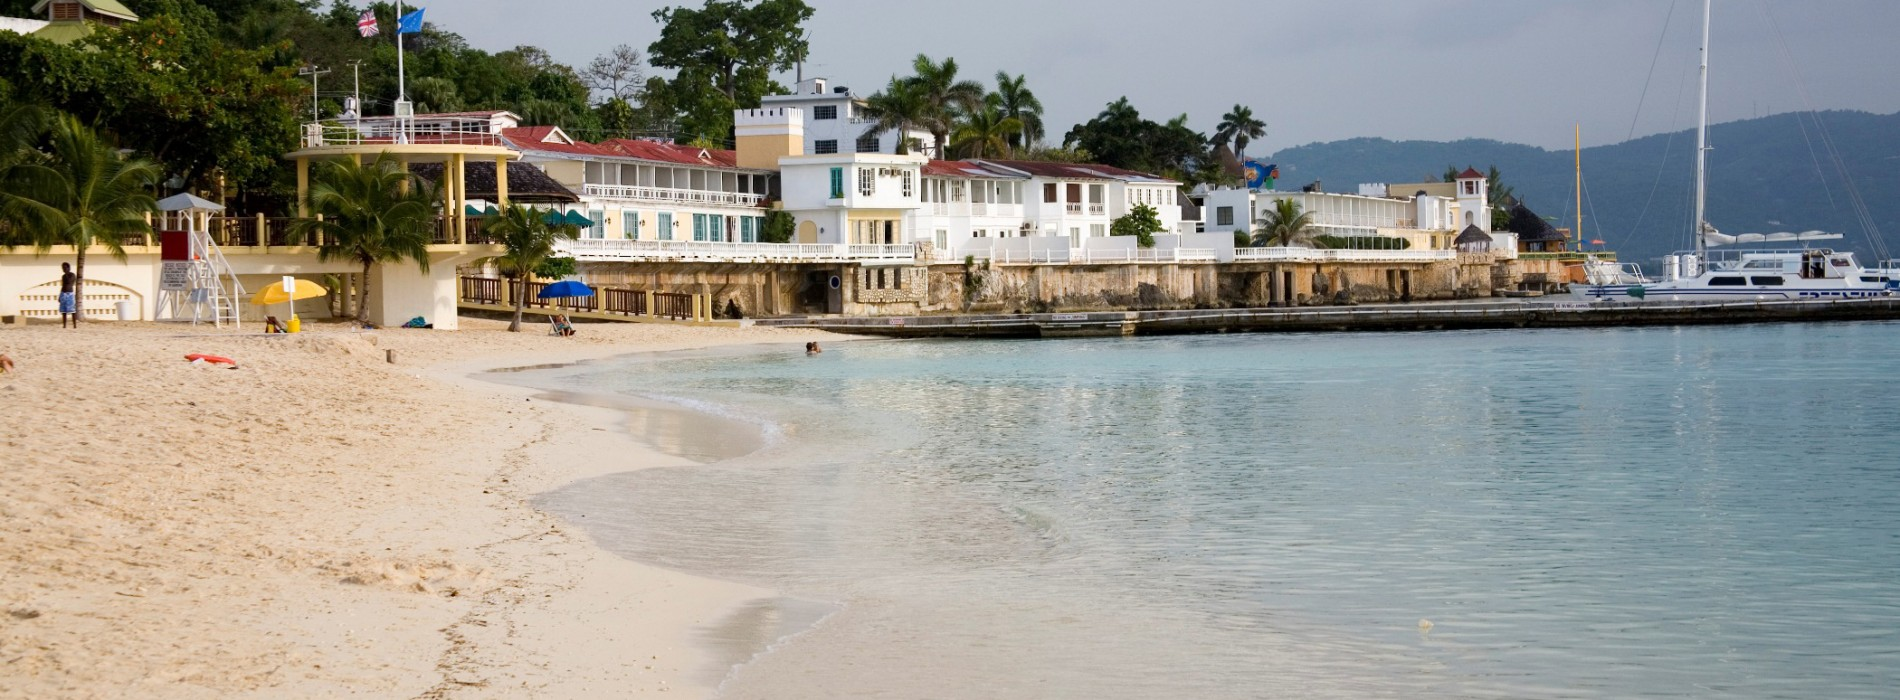 Treat yourself to the Delights of Montego Bay, Jamaica